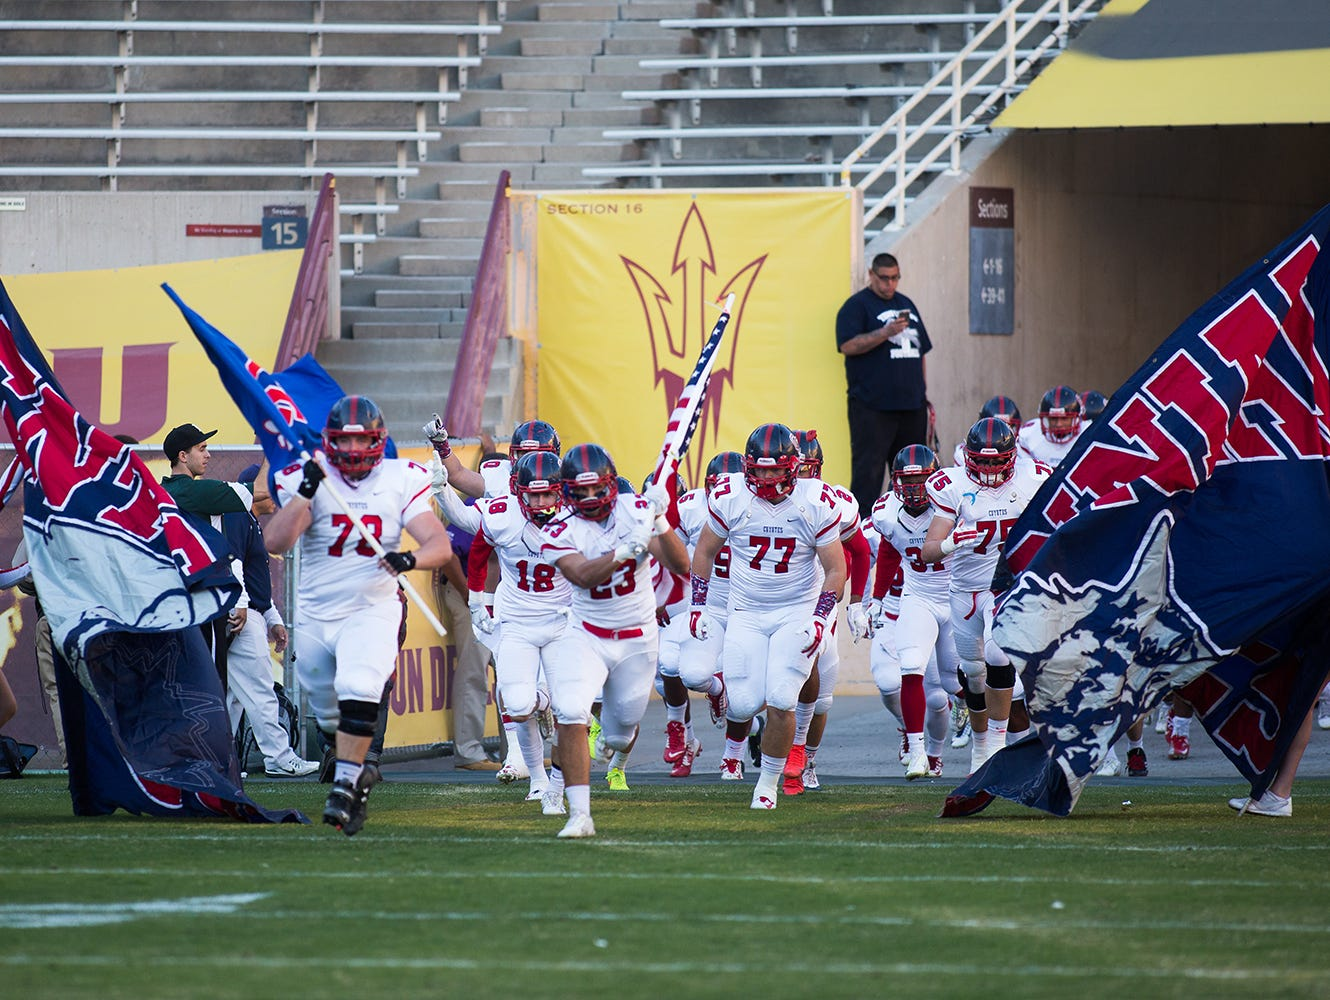 Harold Slemmer came up with the idea of having the Classic the week after the championship games when he saw that Division I Peoria Centennial will face Division II Scottsdale Saguaro this fall in the regular season.